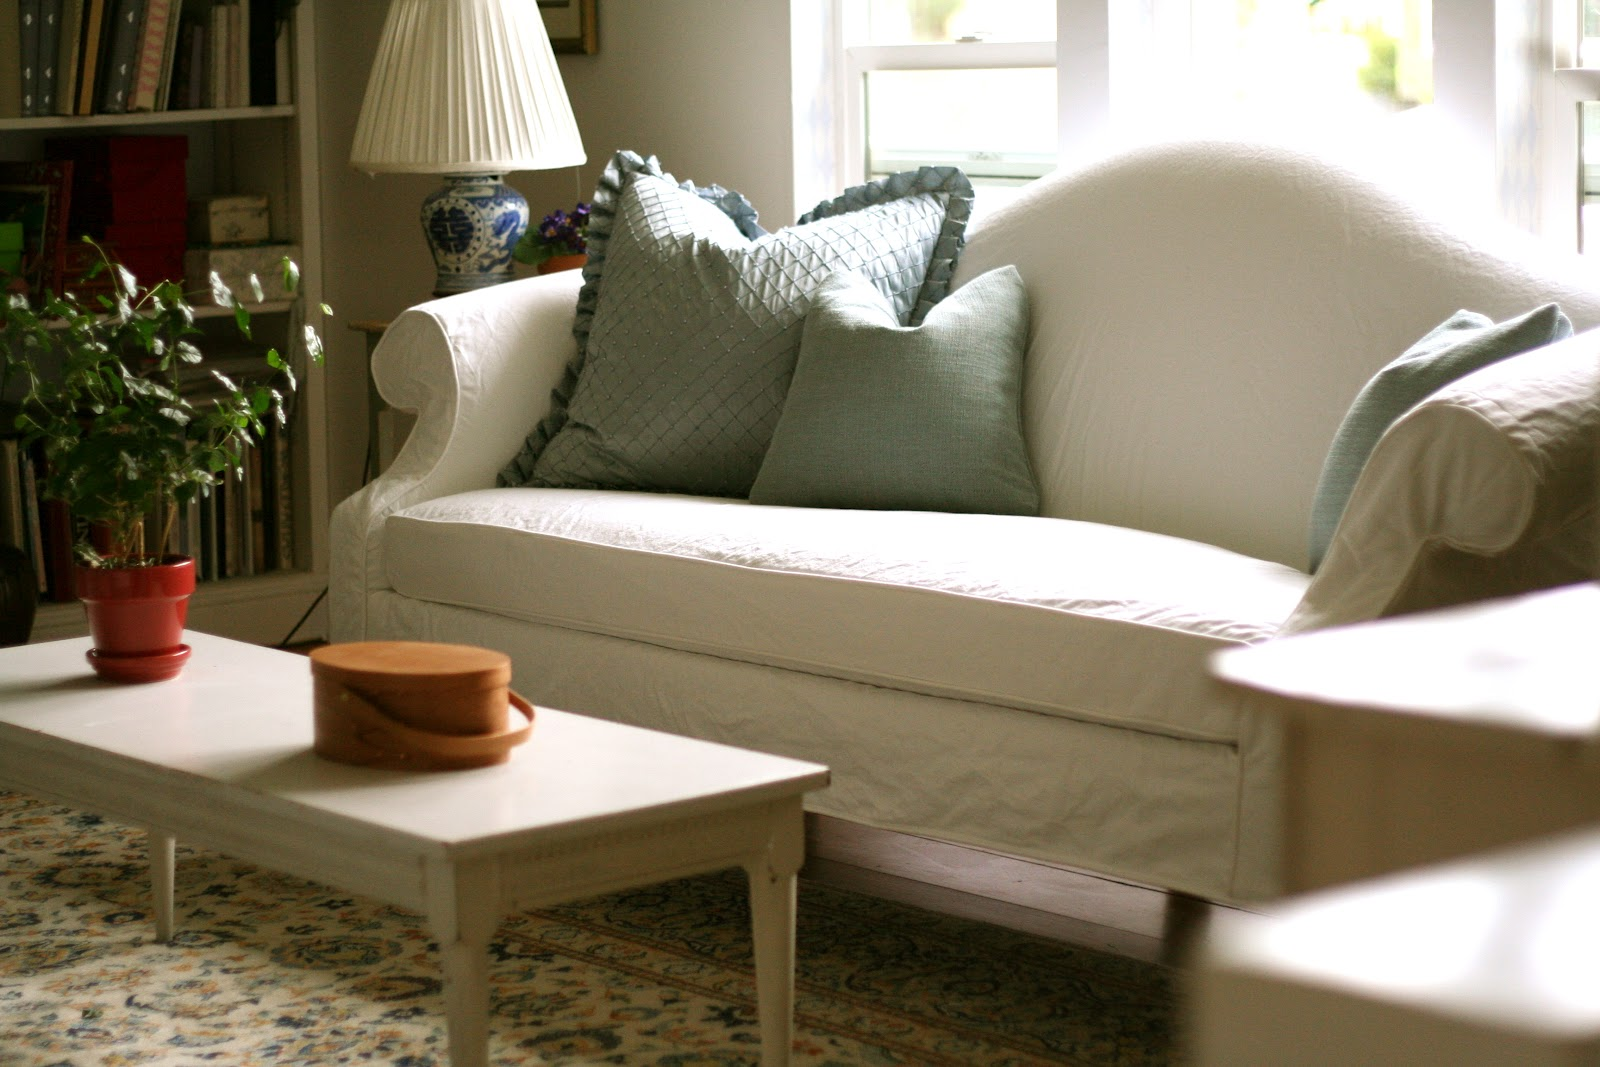 Camelback Sofa Cover Drop Cloth Covers Custom Slipcovers By Shelley White Camel Back Couch